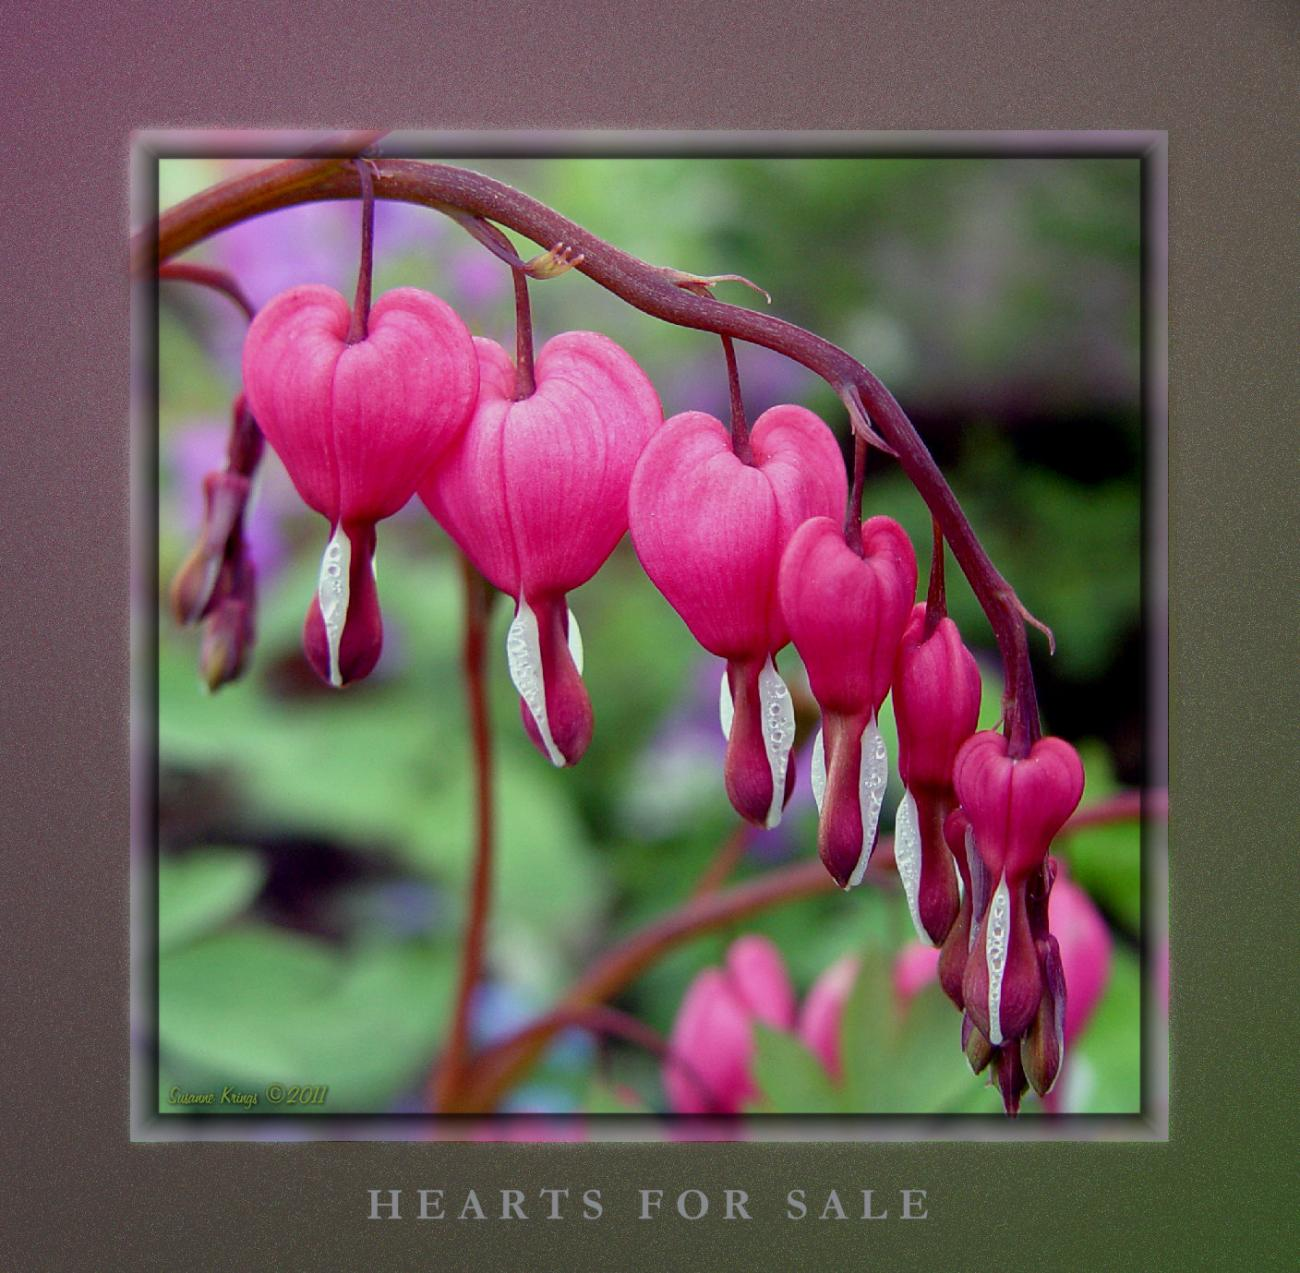 Winter Clearing - Hearts For Sale